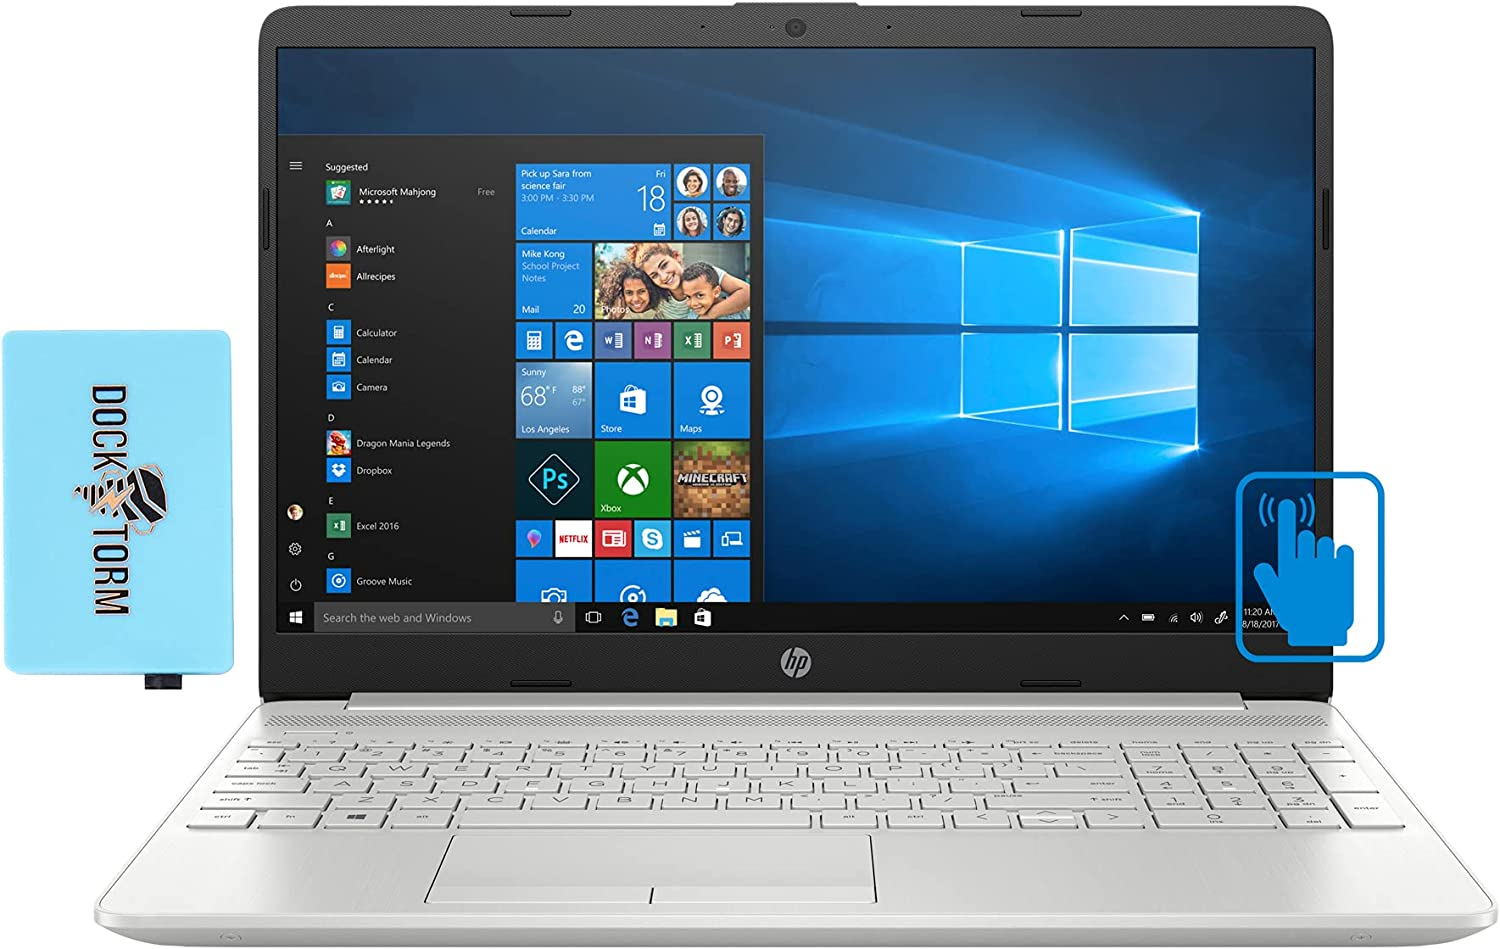 HP 15t-dw300 Home & Business 15.6″ Touch Laptop, 11th Gen Core i7 4-Core, 16GB RAM, 512GB SSD